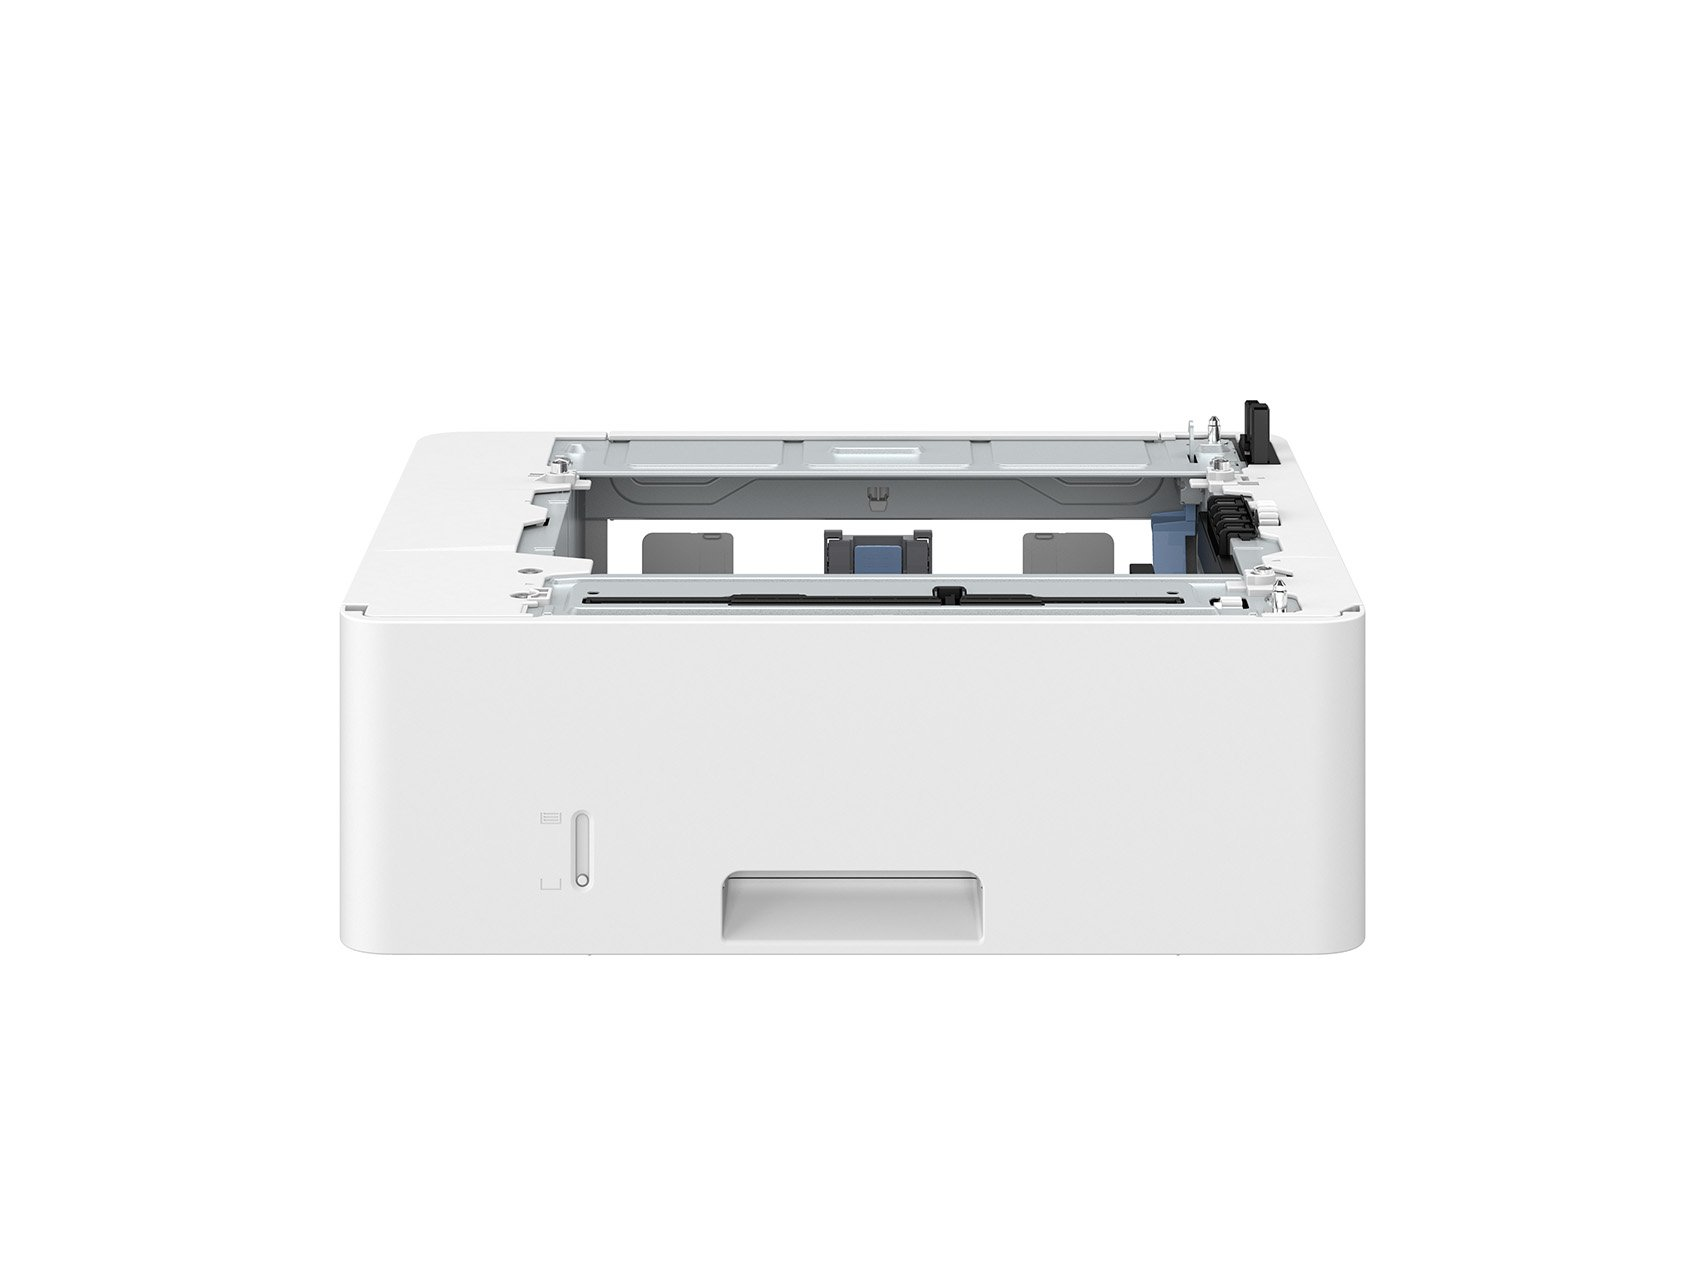 Canon imageCLASS additional paper tray for MF424DW, MF426DW, and LBP214DW (Optional Cassette AH1) by Canon